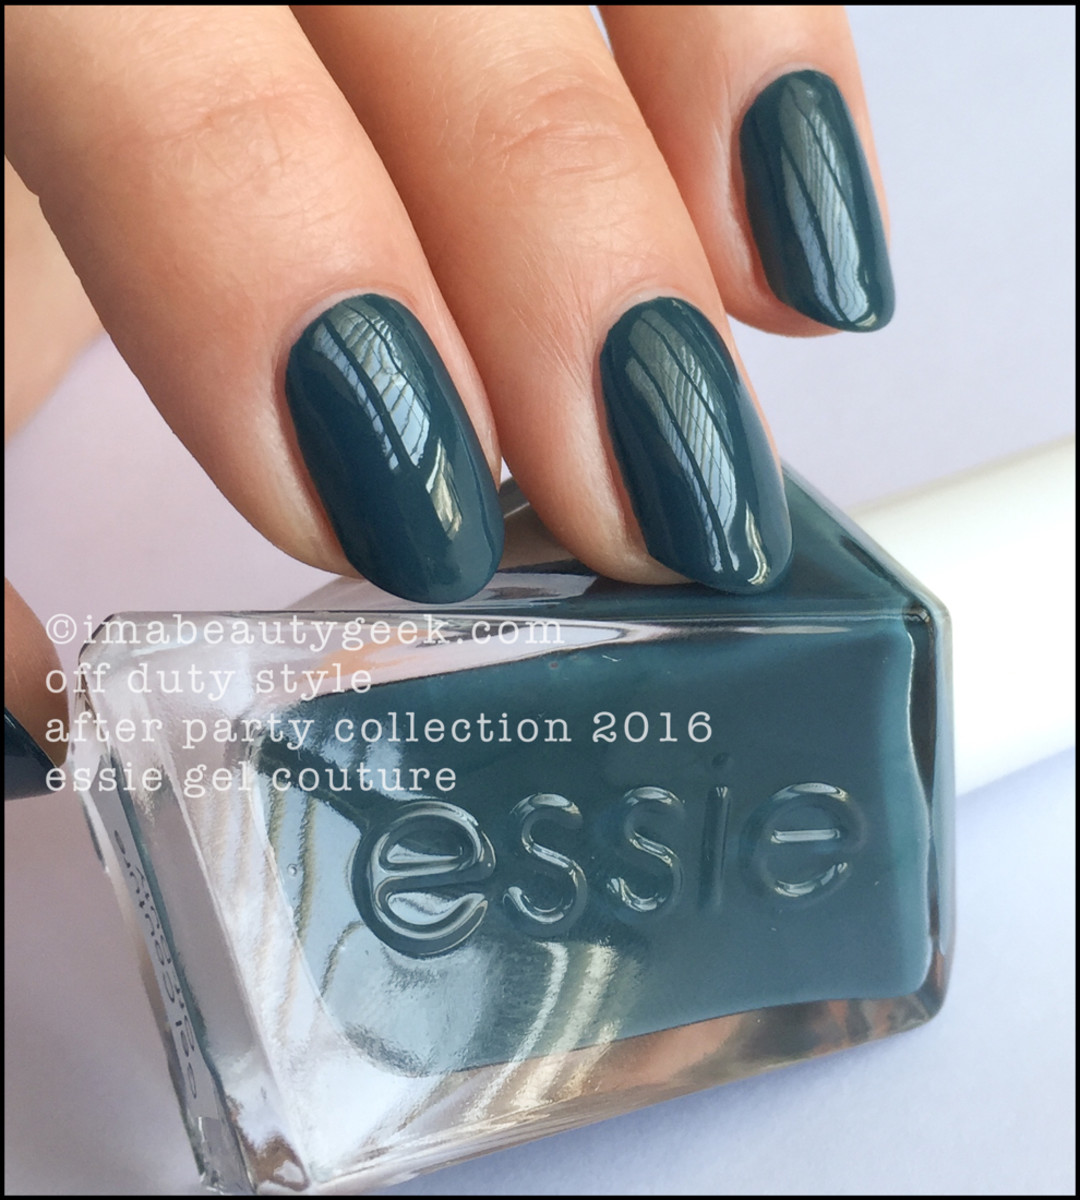 Essie Off Duty Style_Essie Gel Couture Review Swatches 2016